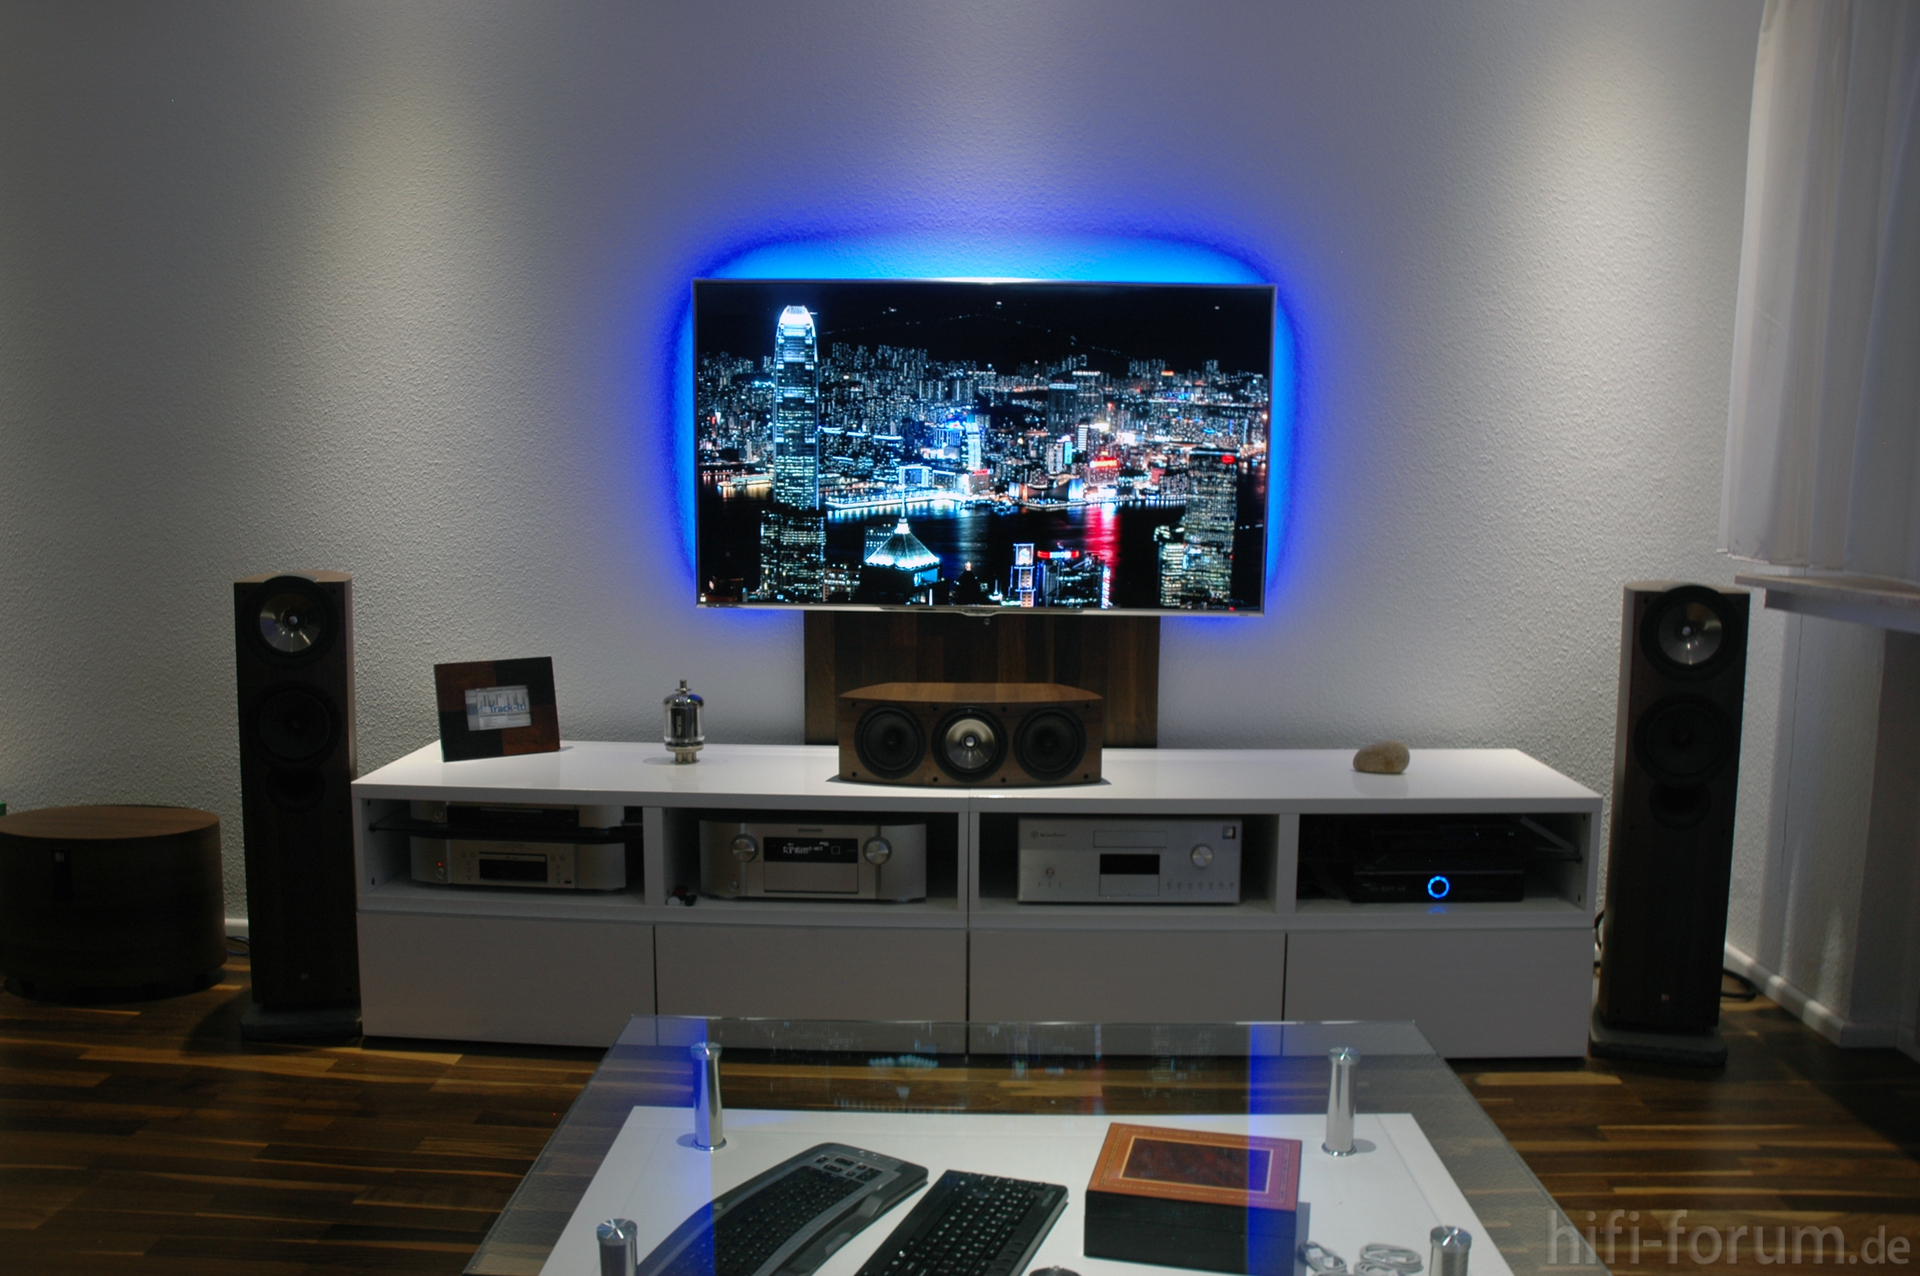 mein wohnzimmer heimkino kef marantz samsung surround topfield wohnzimmer hifi forum. Black Bedroom Furniture Sets. Home Design Ideas